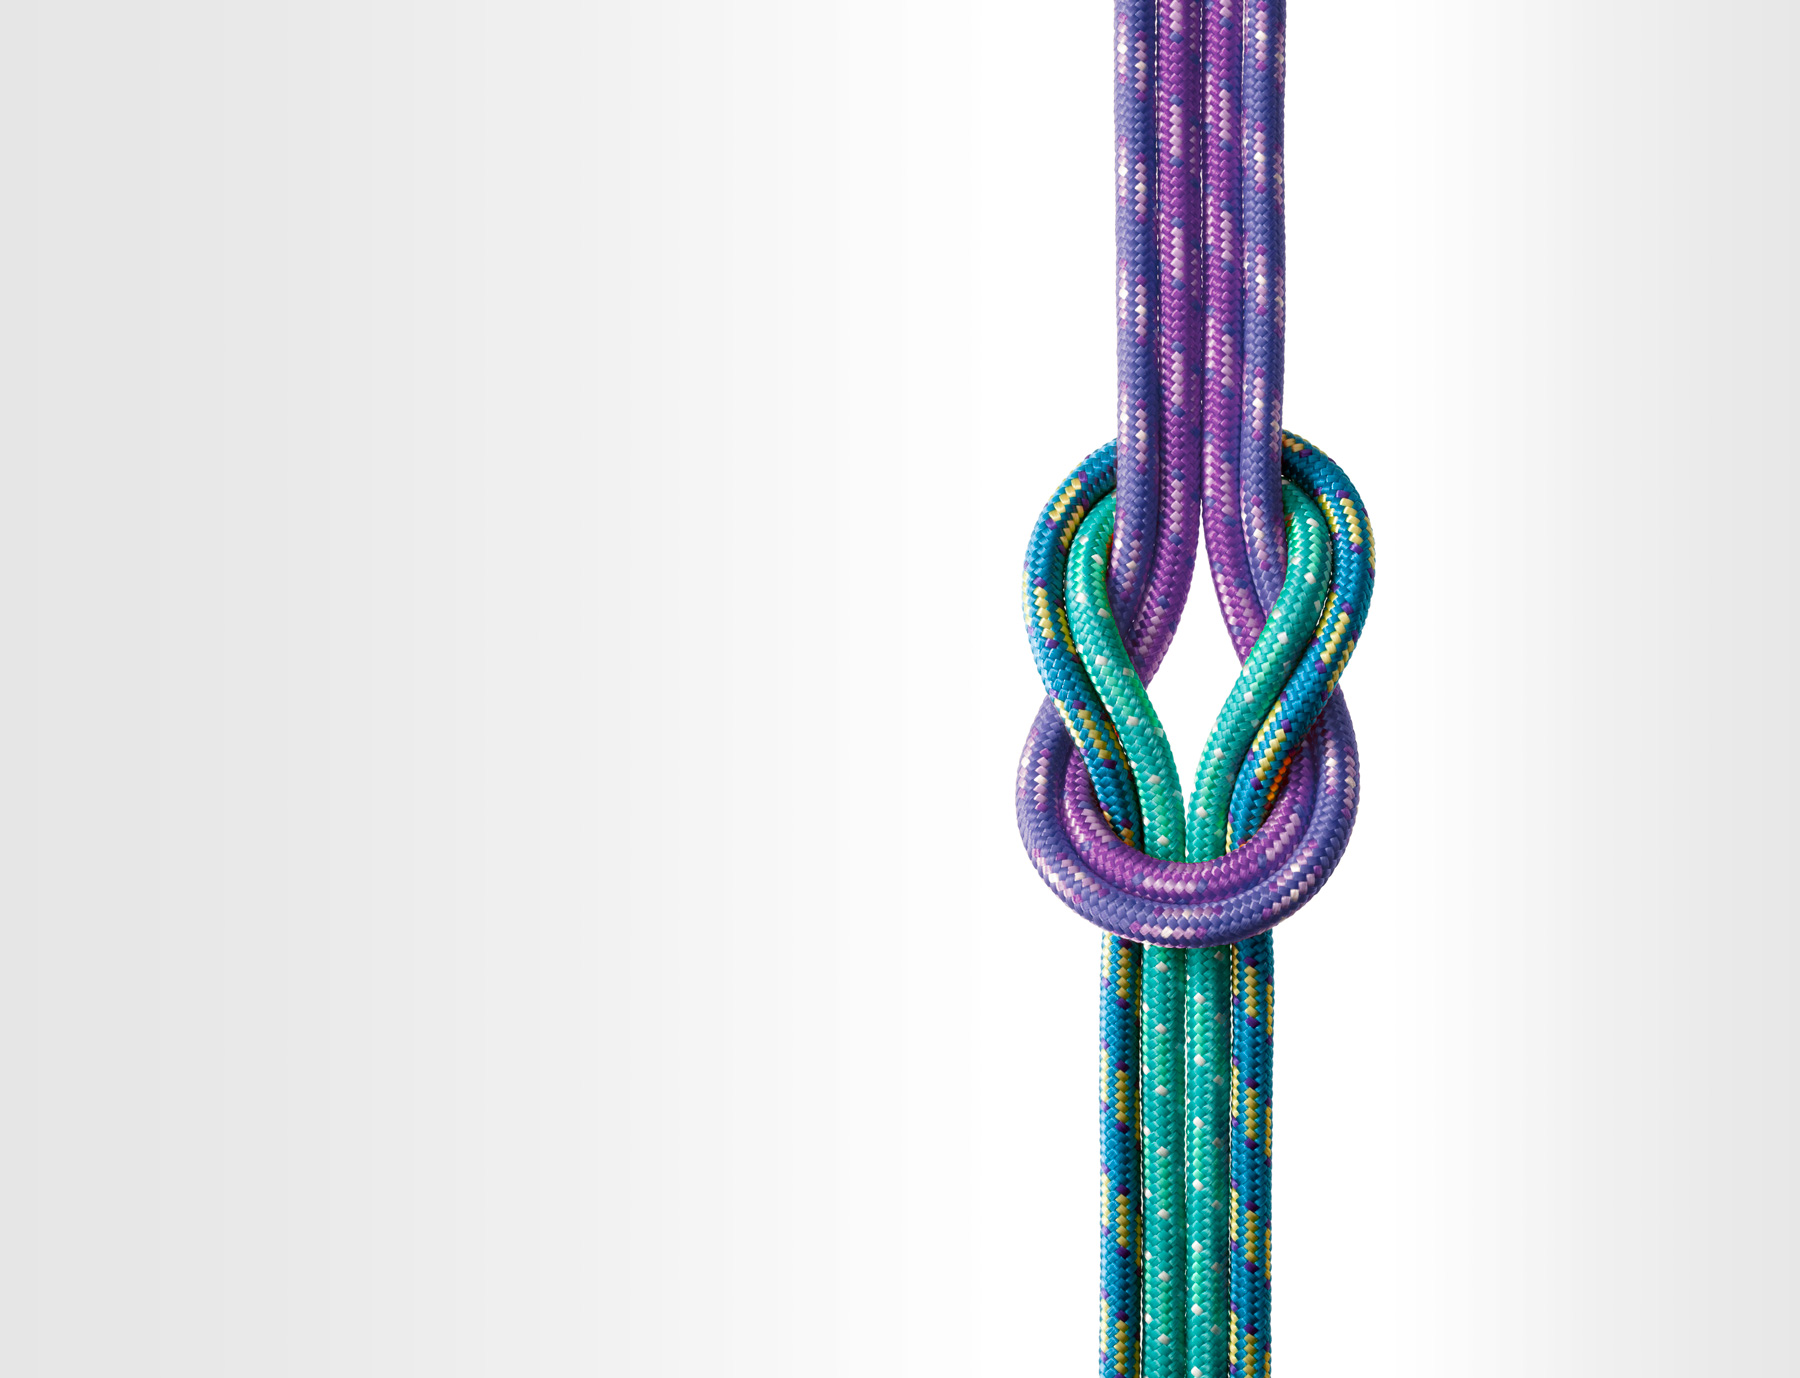 colorful tied ropes